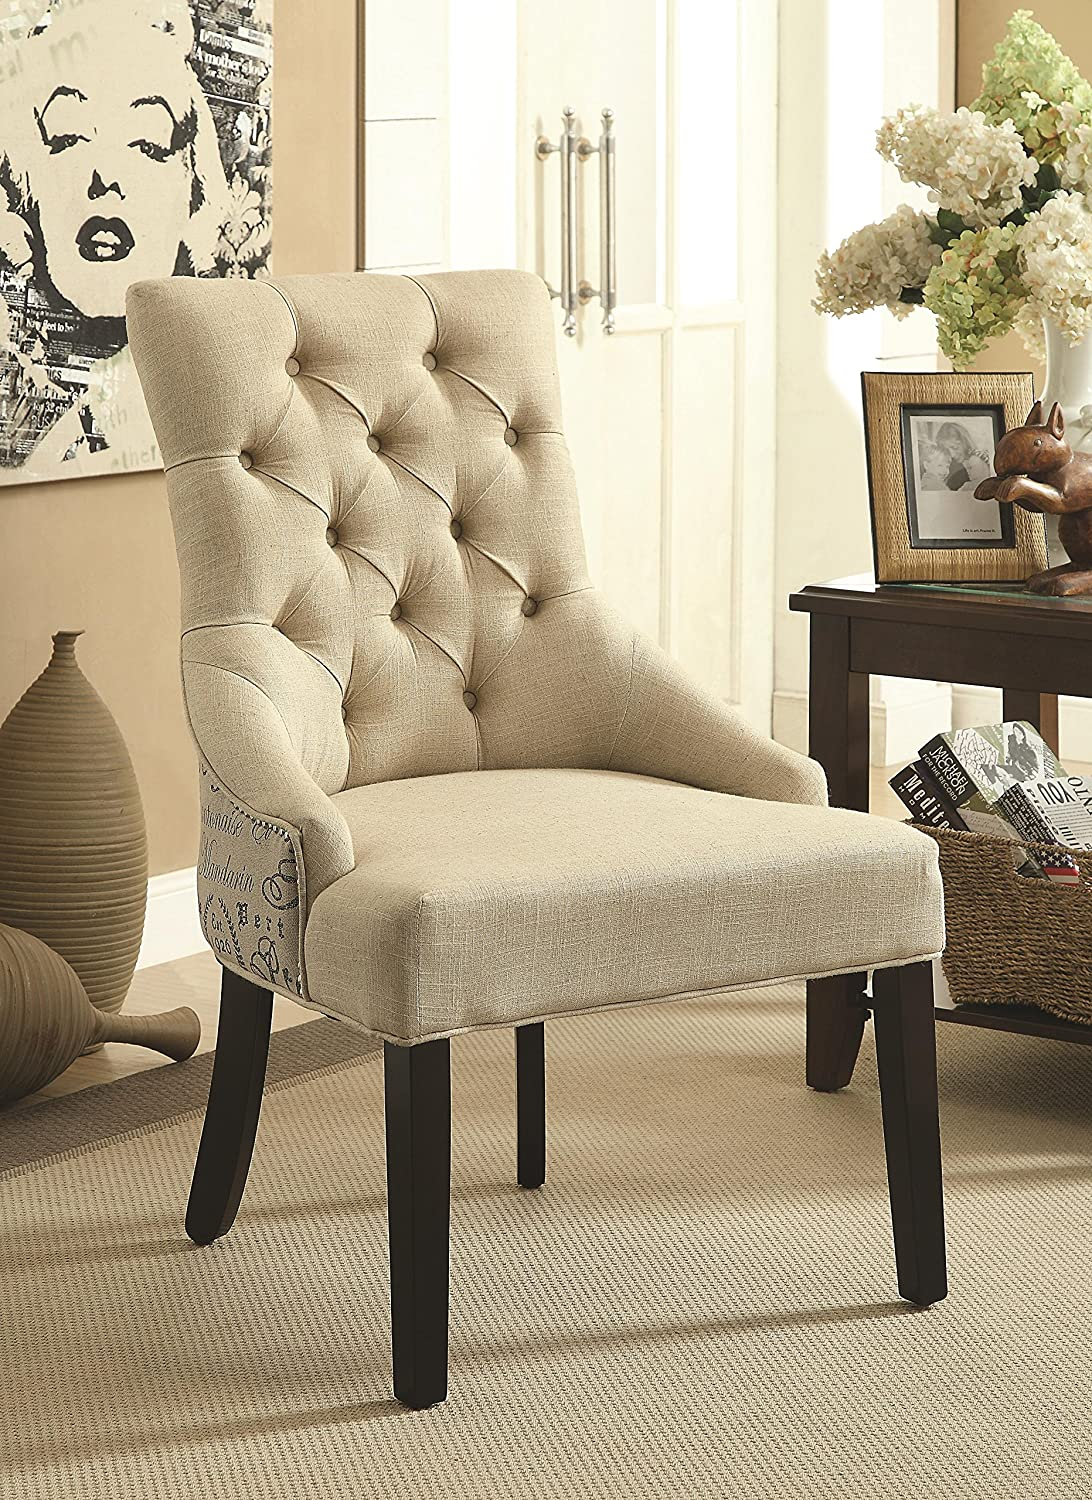 Coaster Home Furnishings Accent Chair, Beige